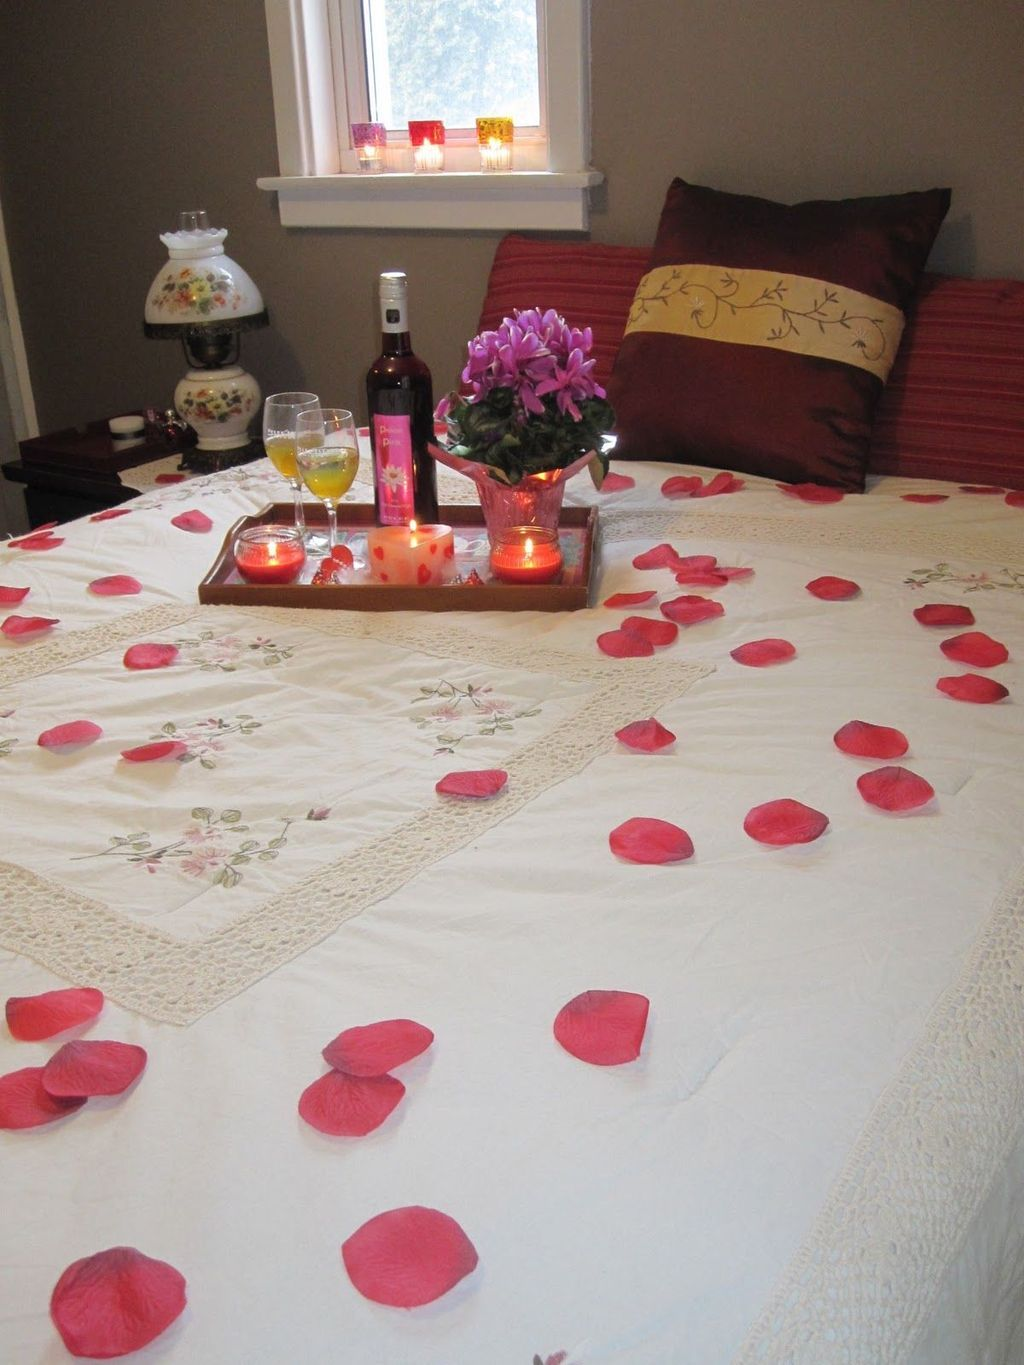 Romantic Bedroom At Night: 20+ Lovely Bedroom Decoration Ideas For Valentines Day